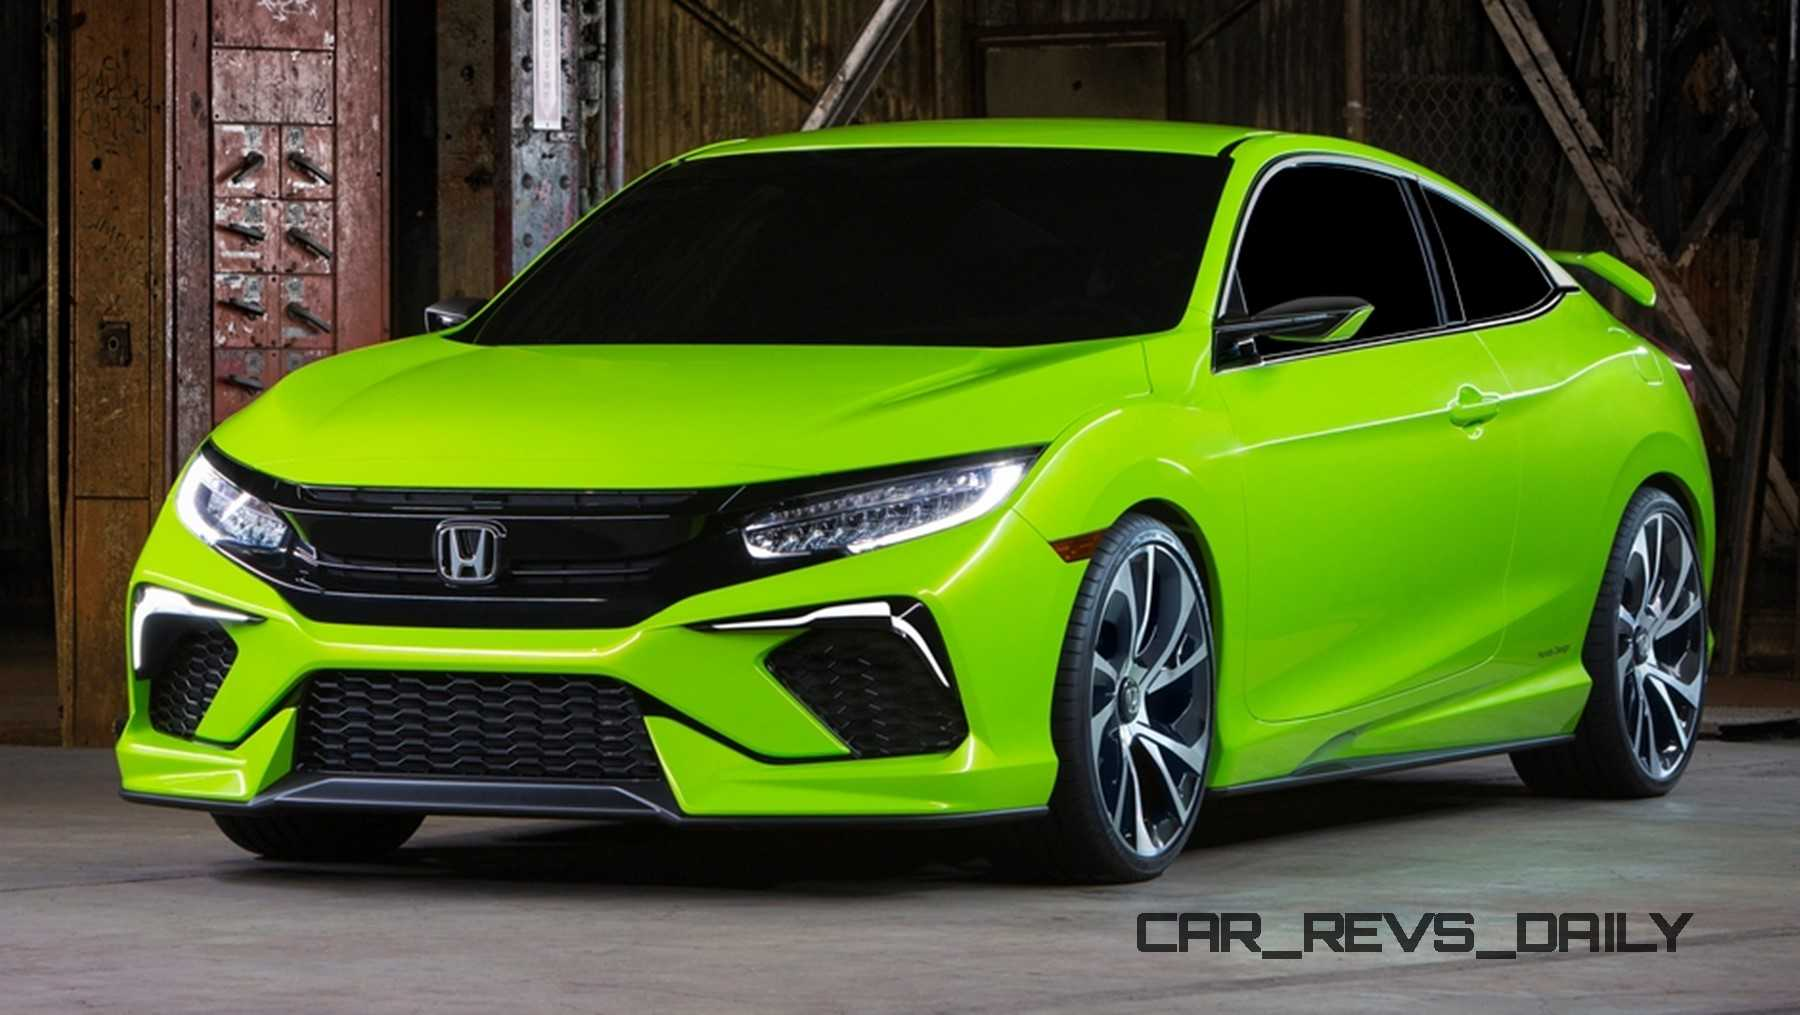 10th Gen Civic >> Honda Civic Coupe Concept